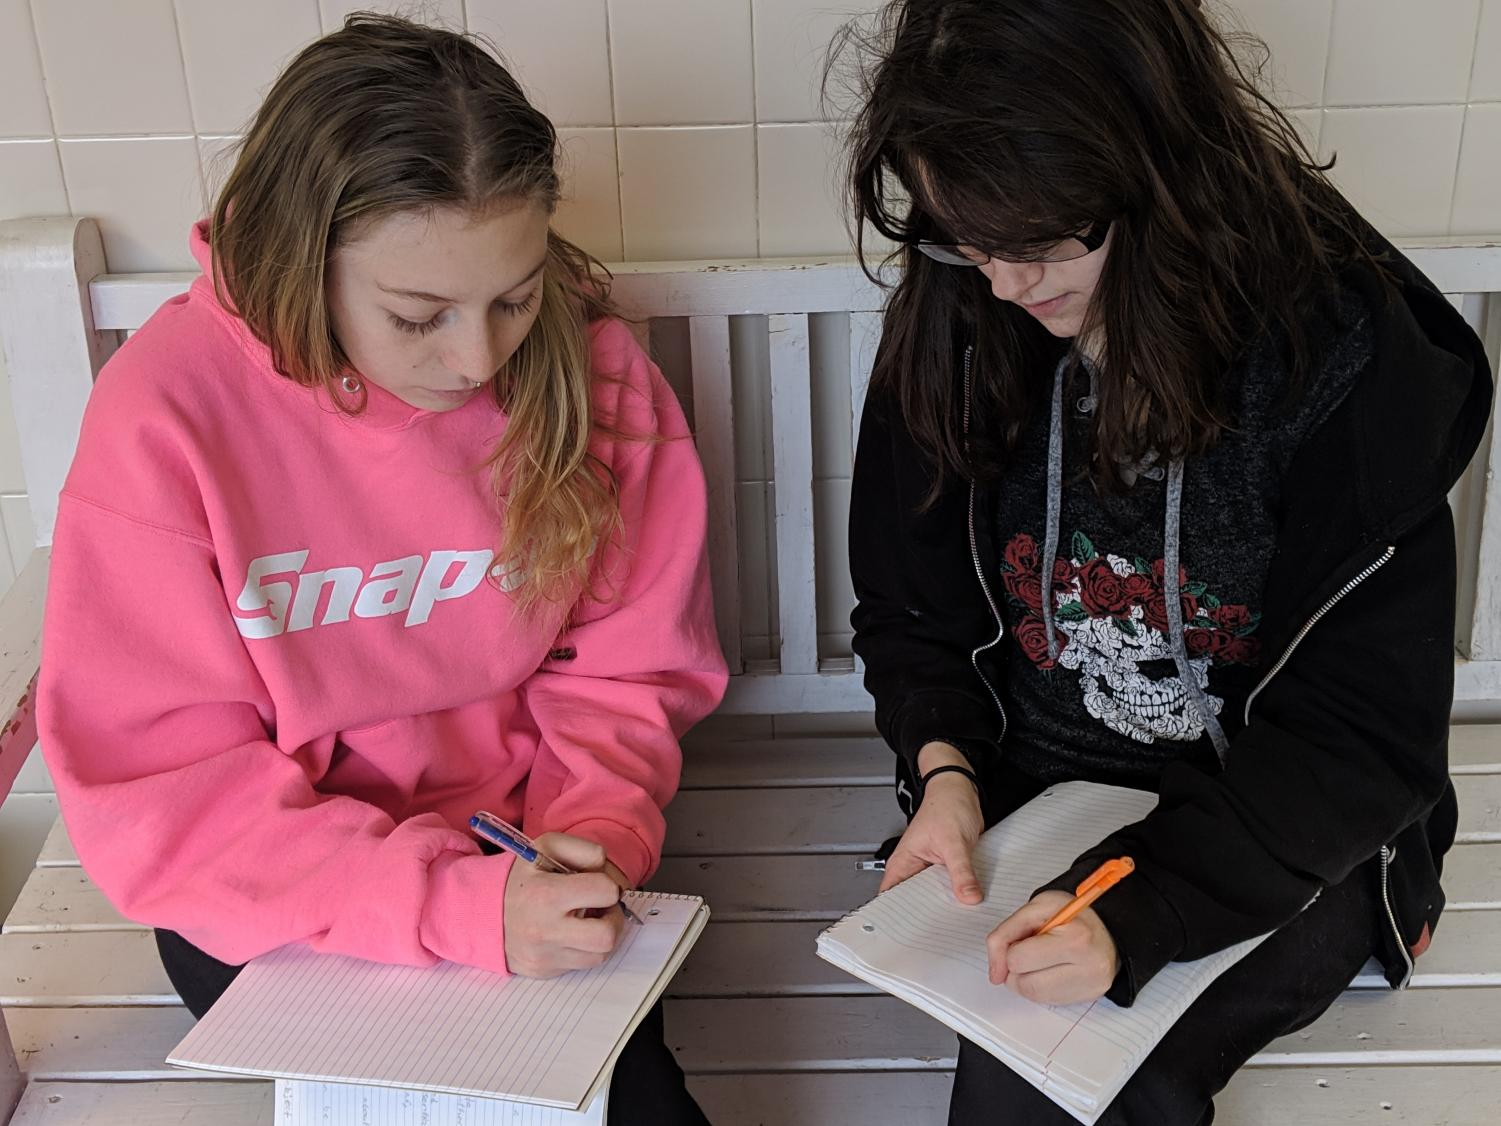 Sitting side by side, senior Heather Cleek and junior Alyson Horner write the same thing. They compare the left-handed writing of Horner to the right-handed writing of Cleek, both of which have a unique style.